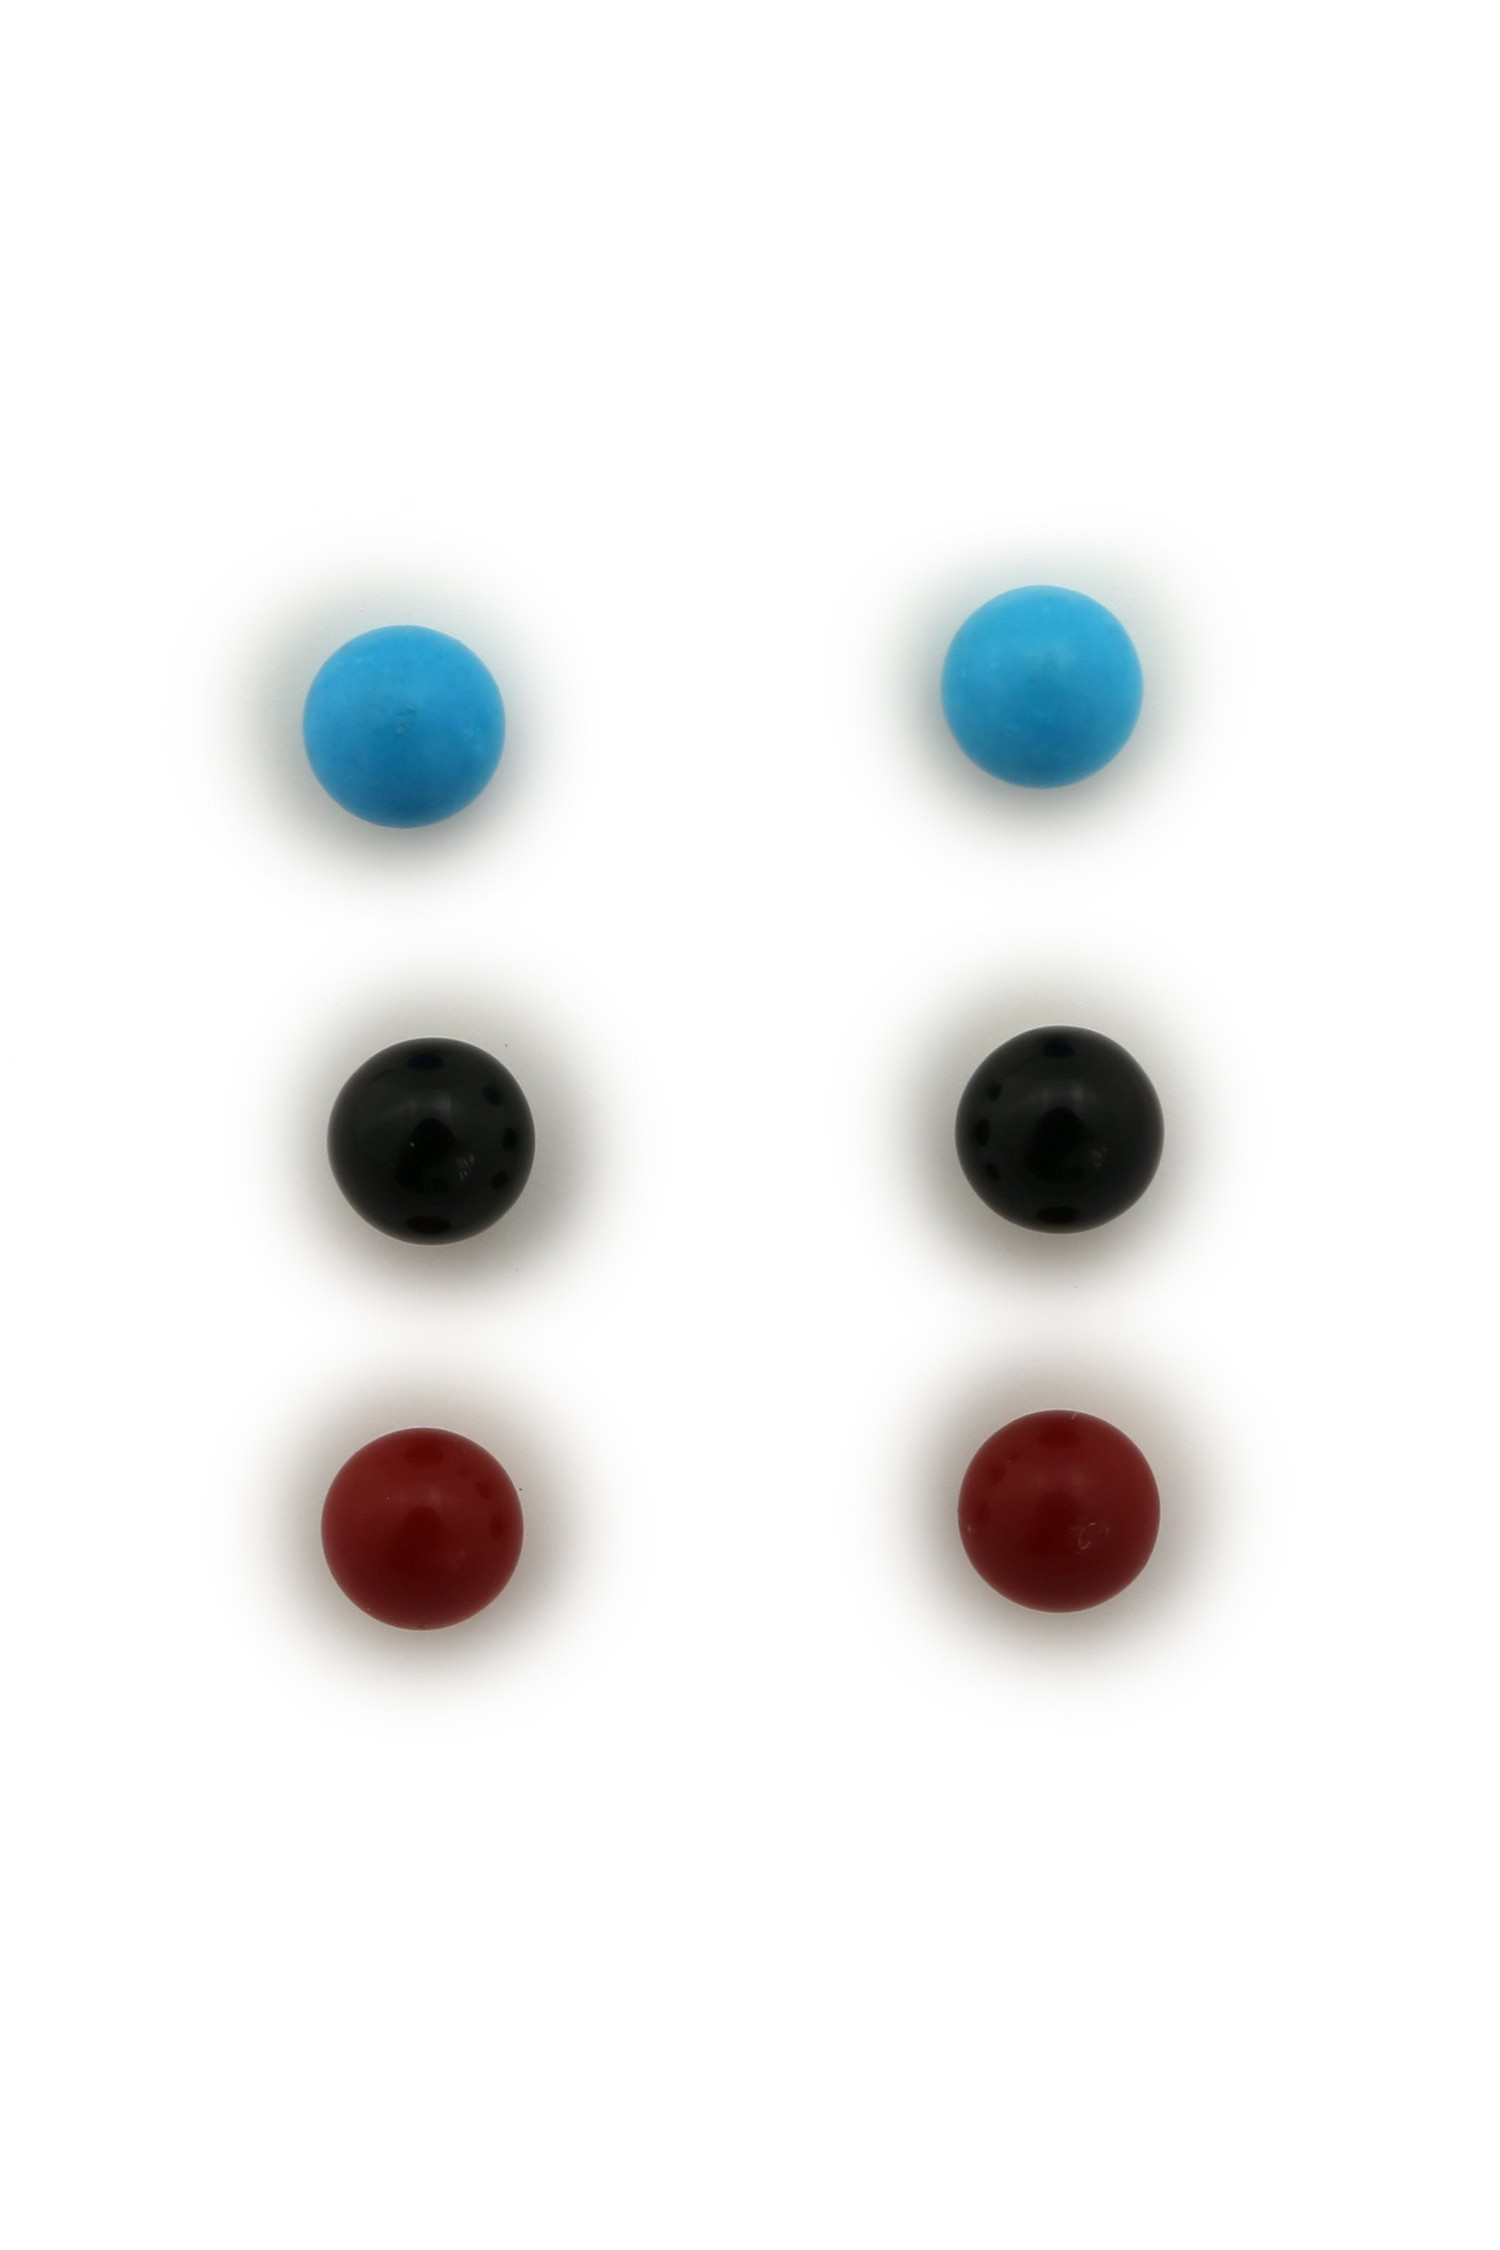 14k Yellow or White Gold 5mm Simulated Turquoise, Simulated Coral, Simulated Onyx Ball Earrings Set by